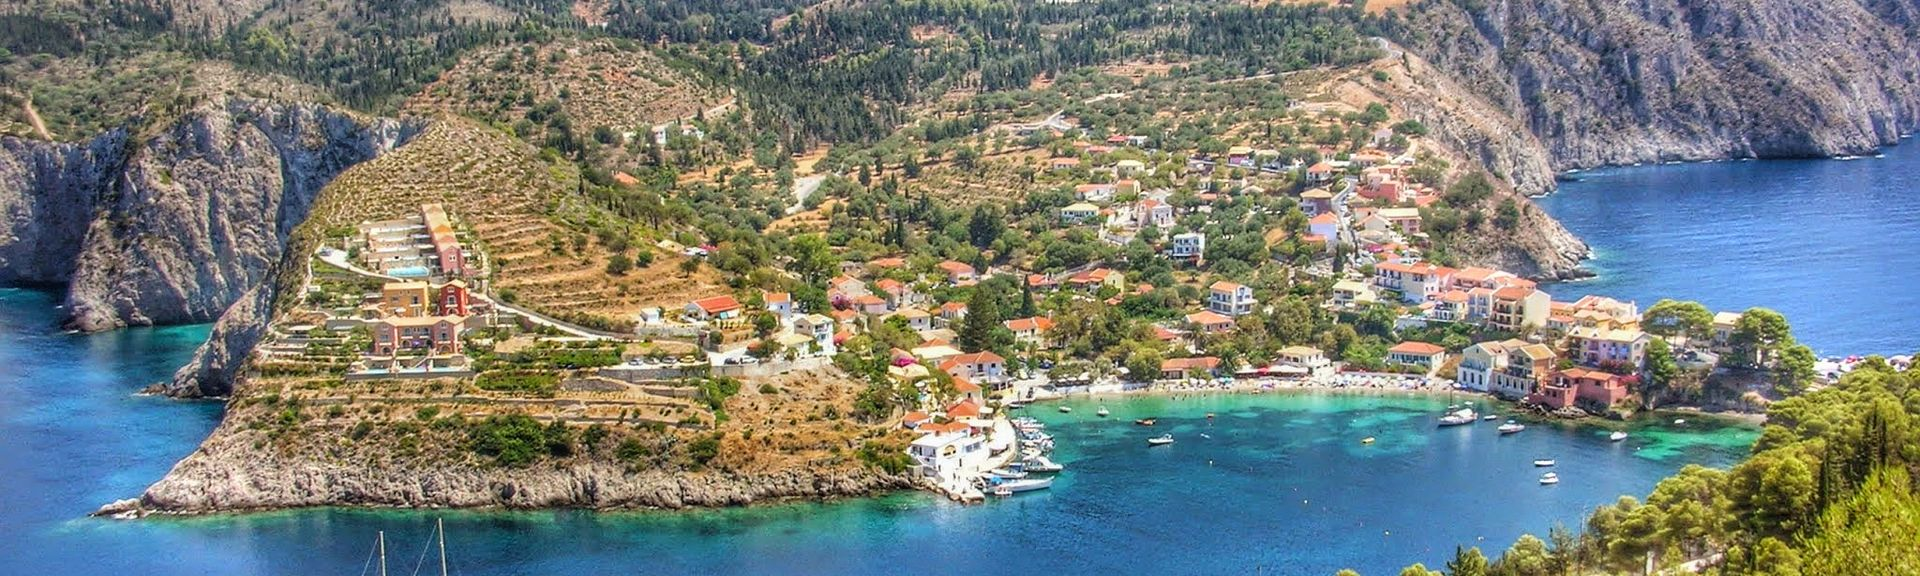 Assos, Kefalonia, Ionian Islands Region, Greece